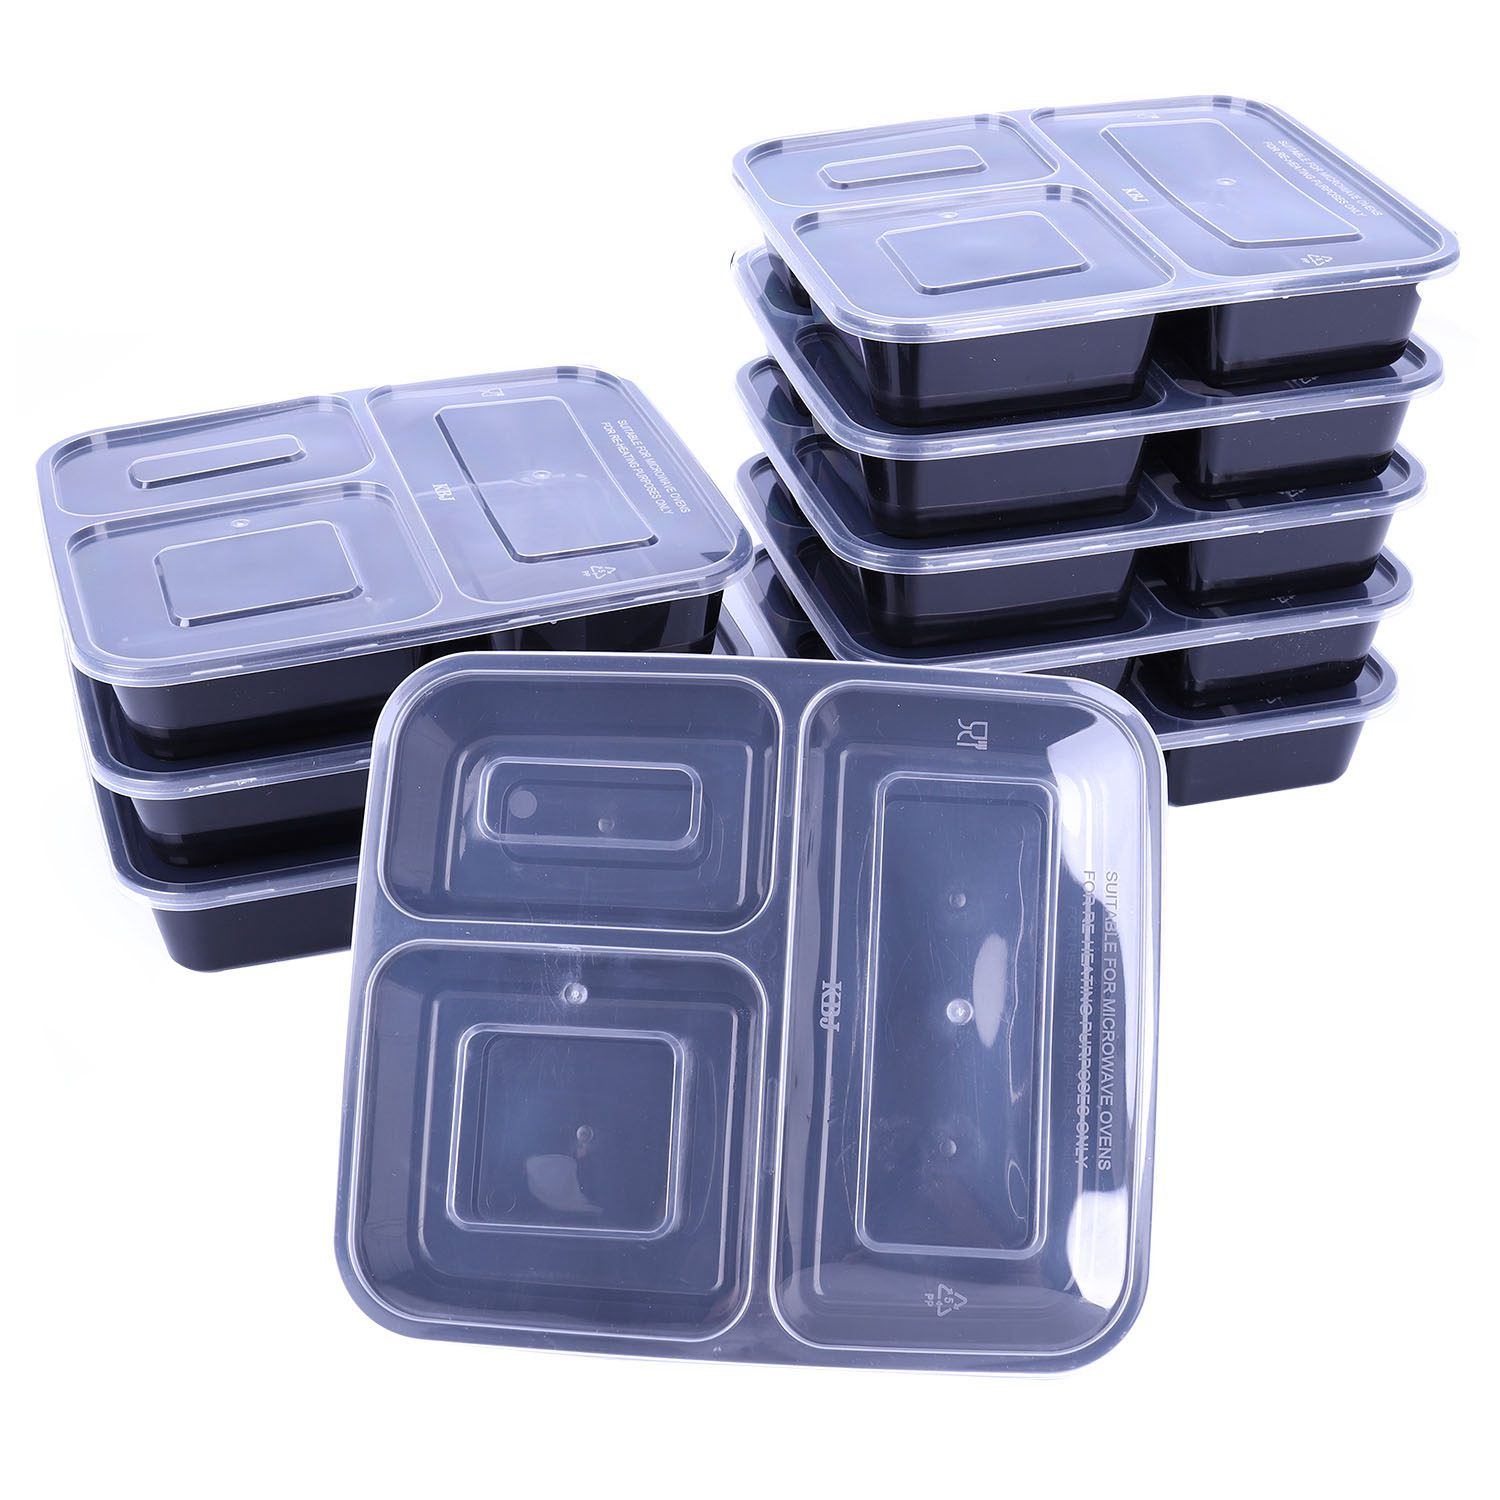 SDFC-Microwavable Meal Prep Plastic Containers Food Storage Reusable Box